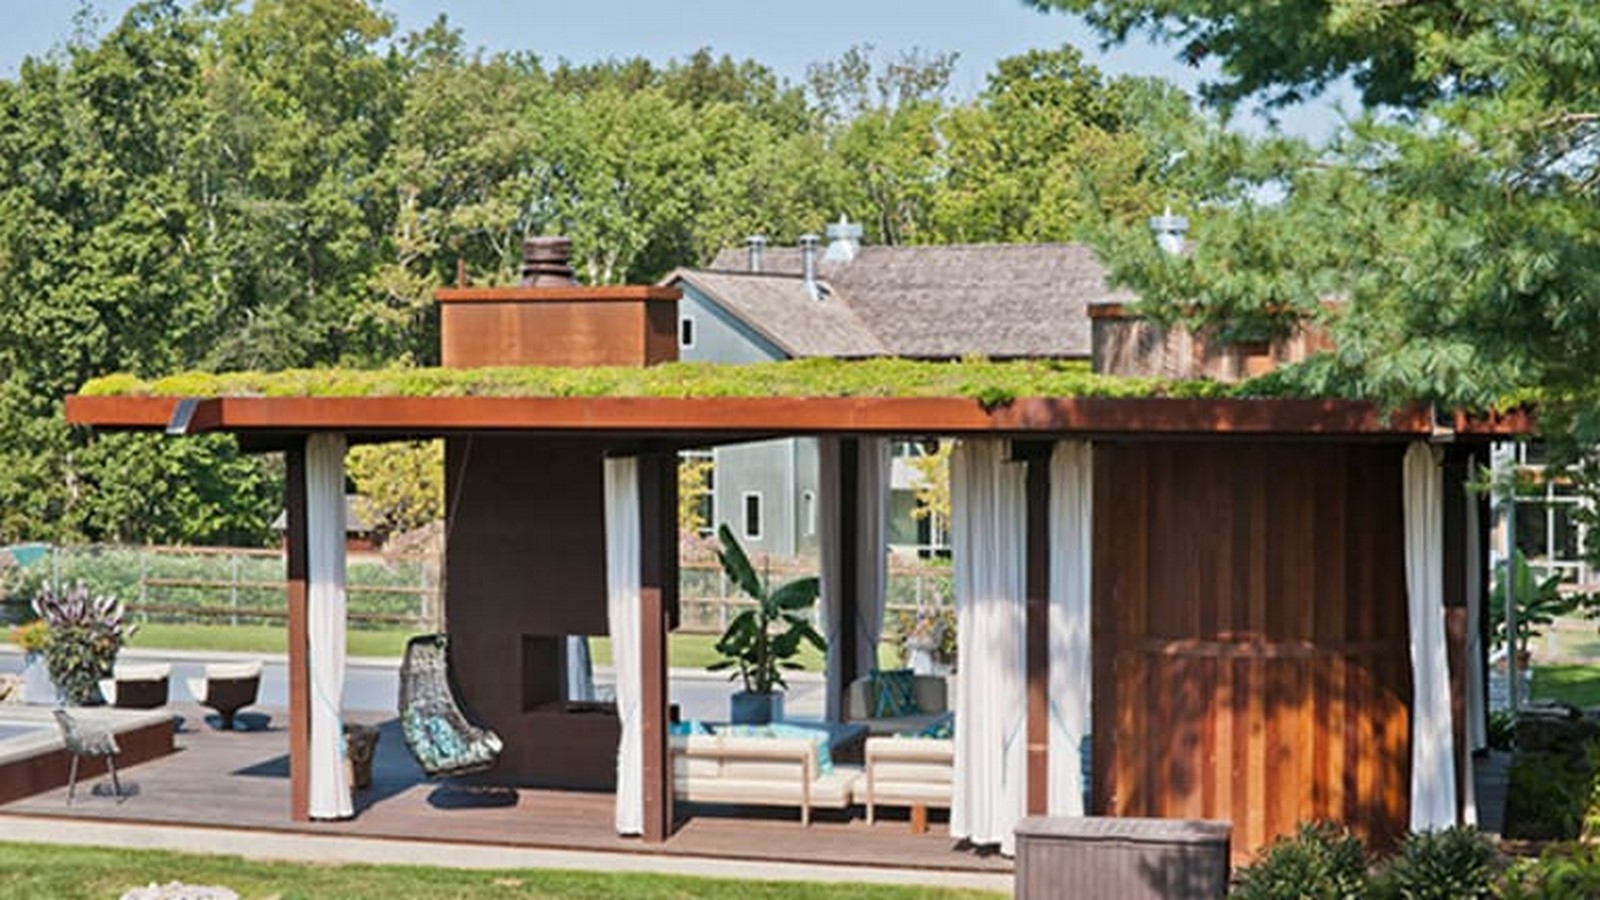 10 things to remember when designing rooftop gardens - Sheet5